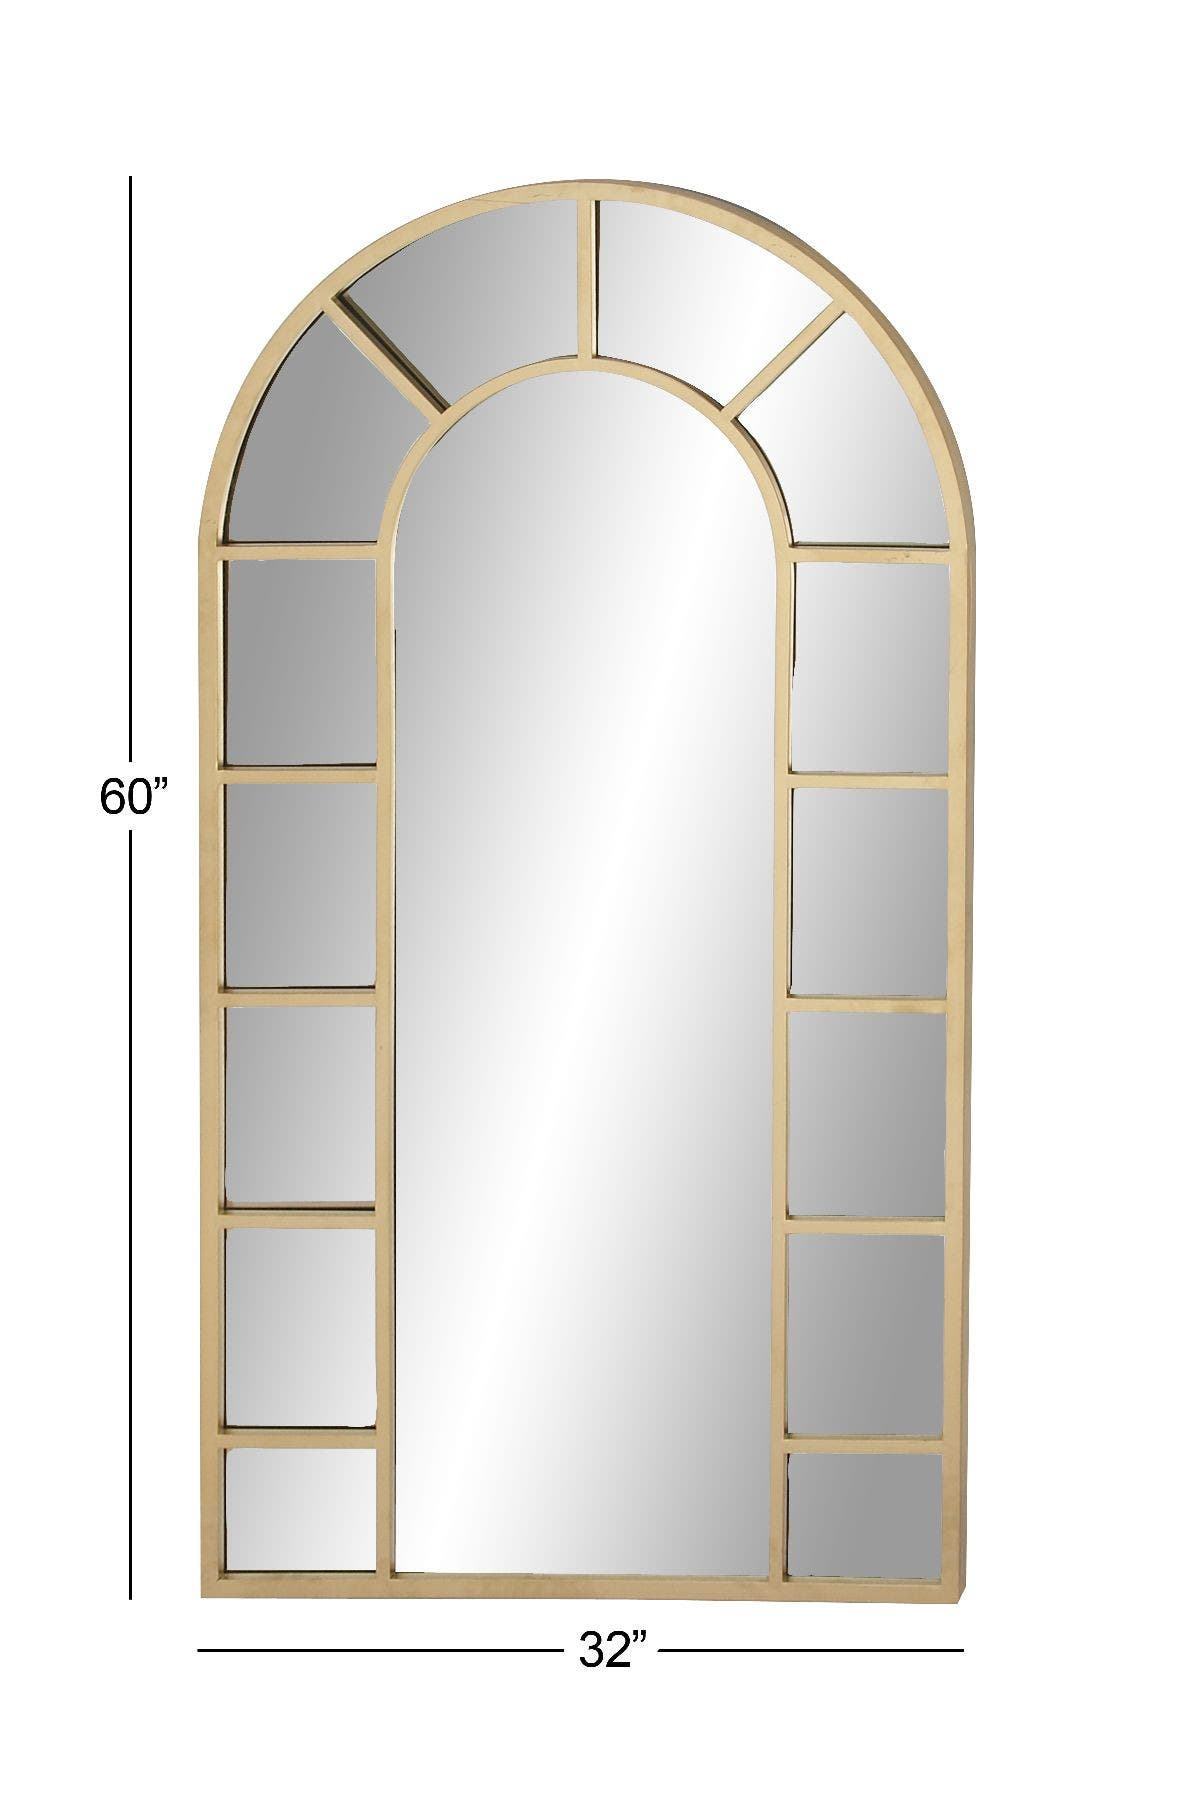 Image of Willow Row Gold Contemporary Framed Arched Wall Mirror